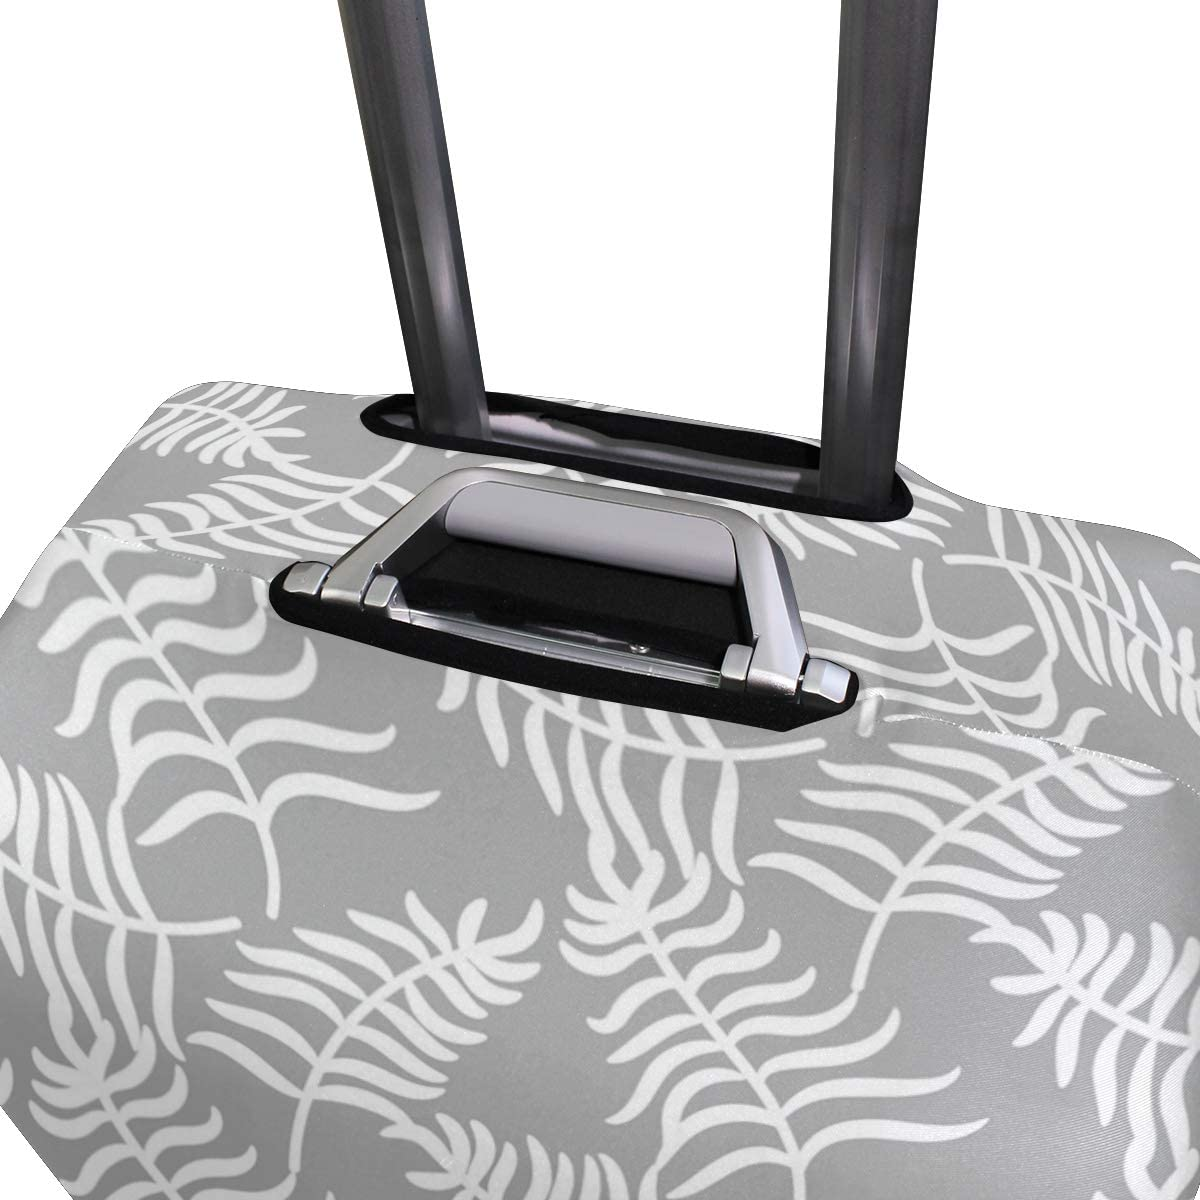 White Palm Leaves On Gray Travel Luggage Protector Case Suitcase Protector For Man/&Woman Fits 18-32 Inch Luggage